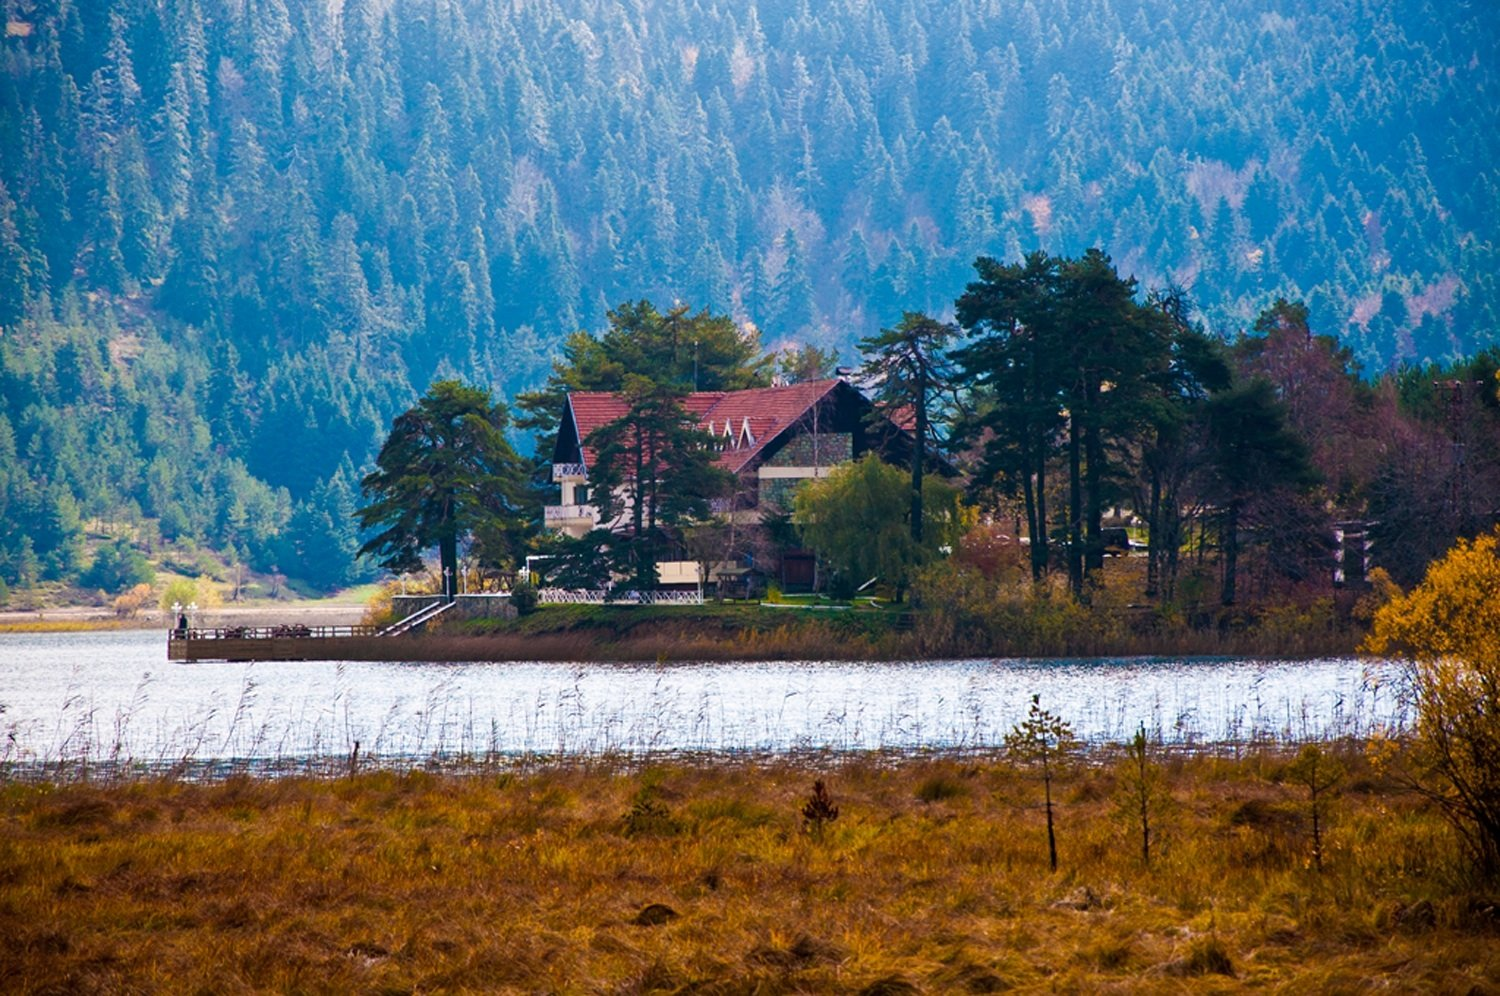 Picture of home on a lake in the mountains